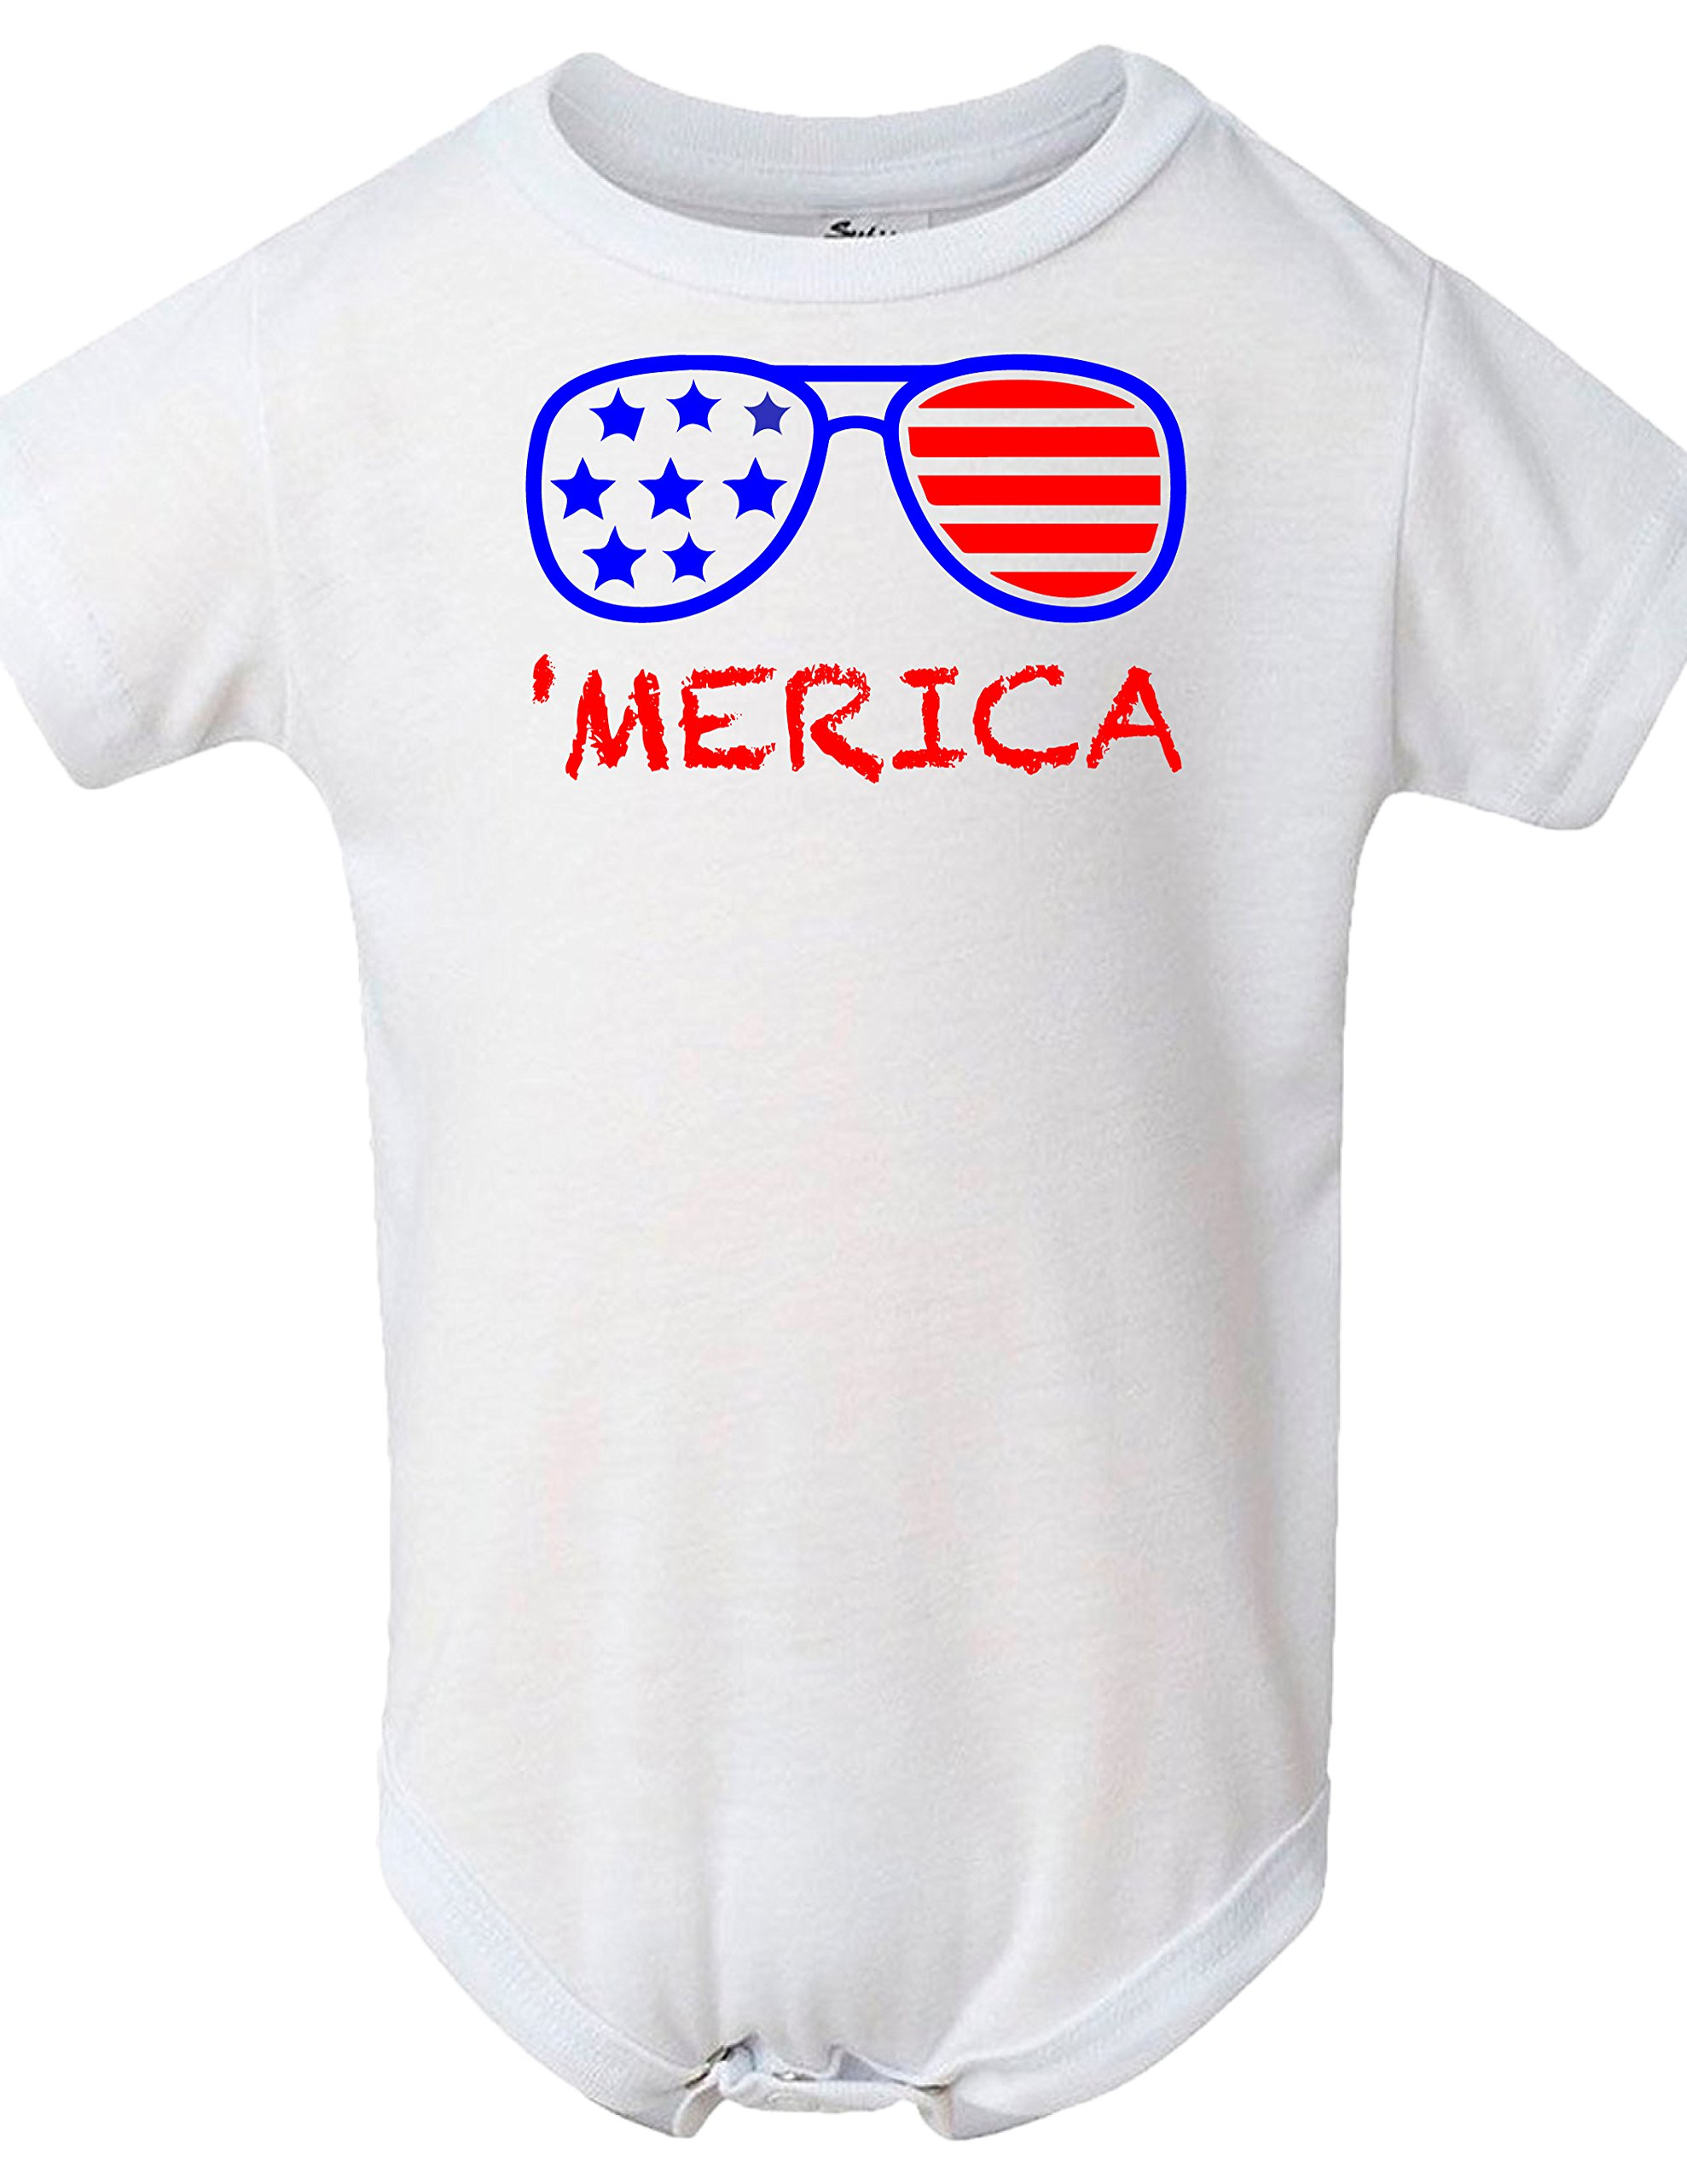 BLAKENREAG America Sunglasses Patriotic 4th of July Funny Baby Bodysuit Baby Boy Girl Clothes (6 Months)